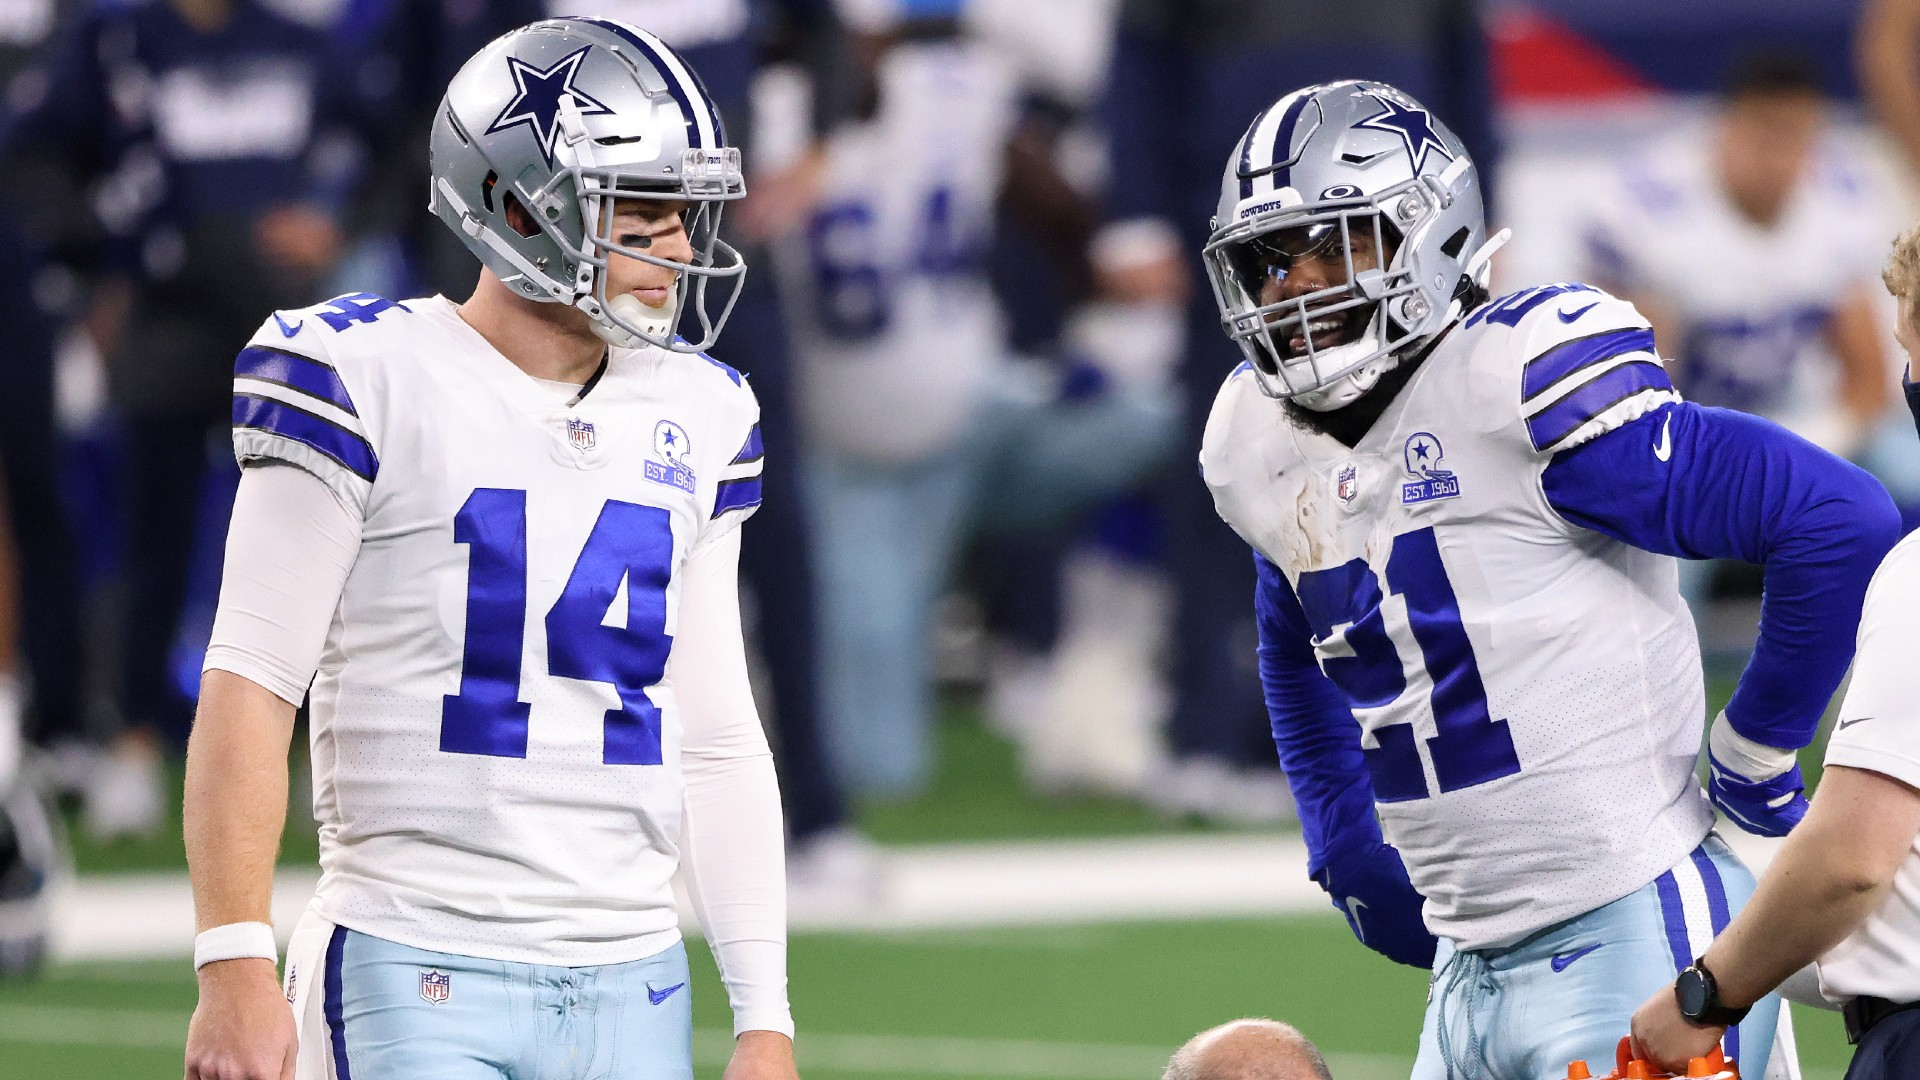 NFL Thanksgiving picks, predictions against spread: Cowboys, Steelers roll rivals; Texans trounce Lions